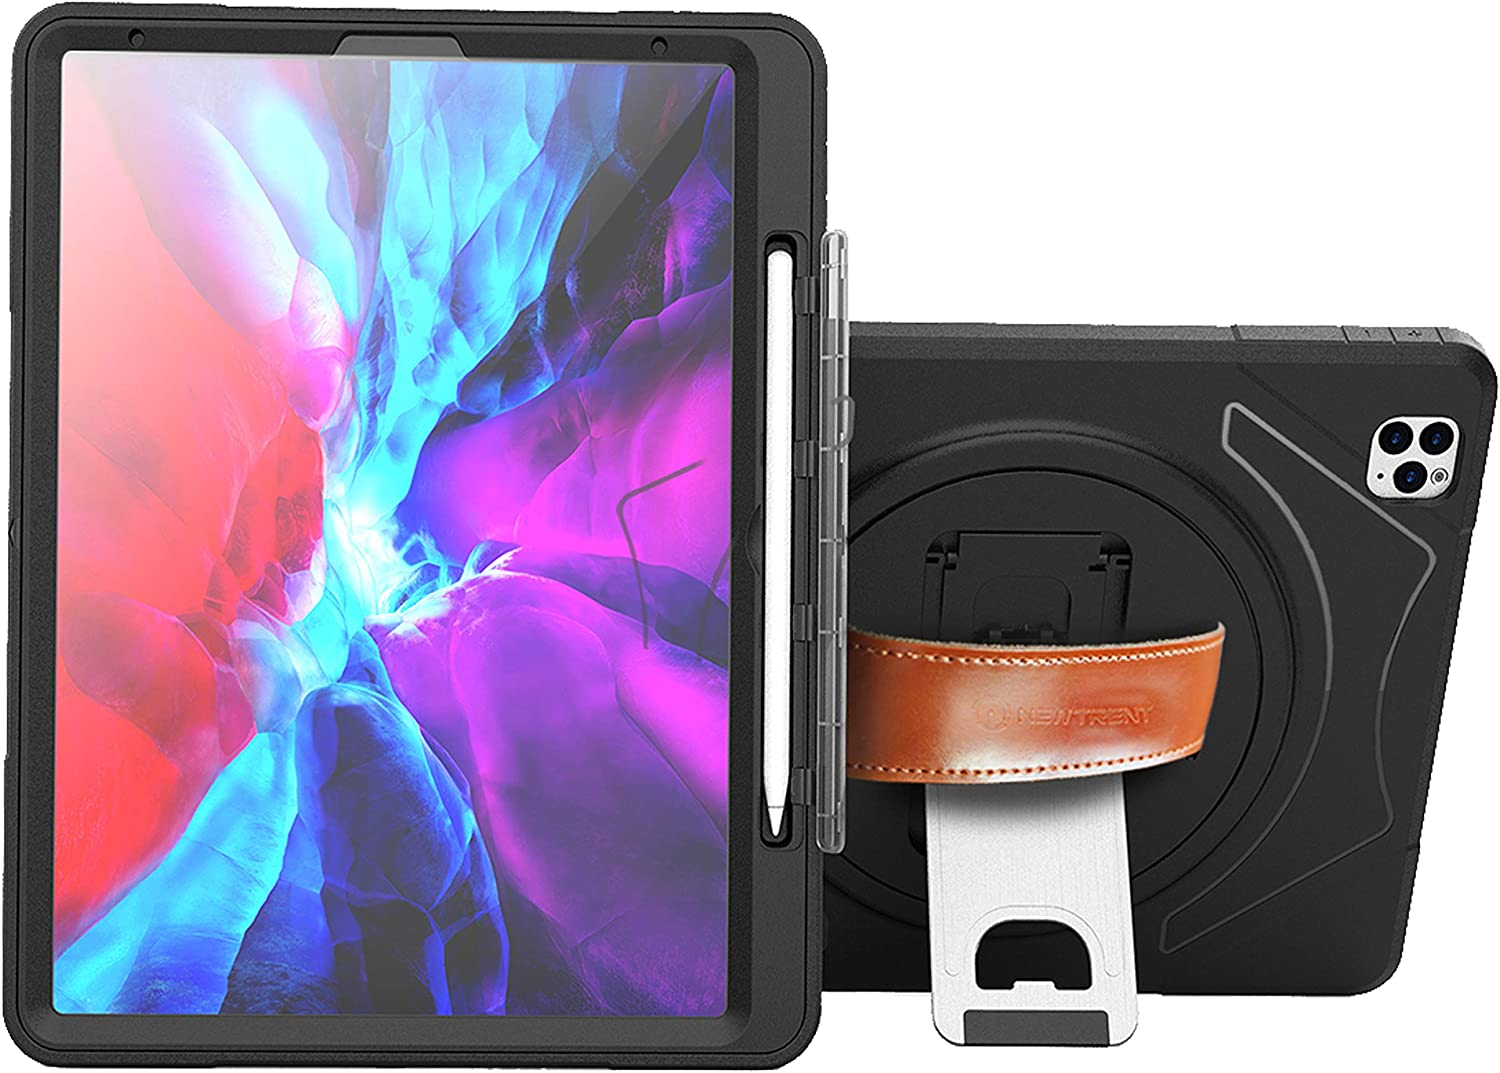 New Trent iPad Pro 12.9 Case 2020 for iPad Pro 12.9 Case 4th Generation, Full Body Rugged Kickstand ipad 12.9 2020 case, with Rotational Hand Strap, Apple Pencil Holder & Built-in Screen Protector